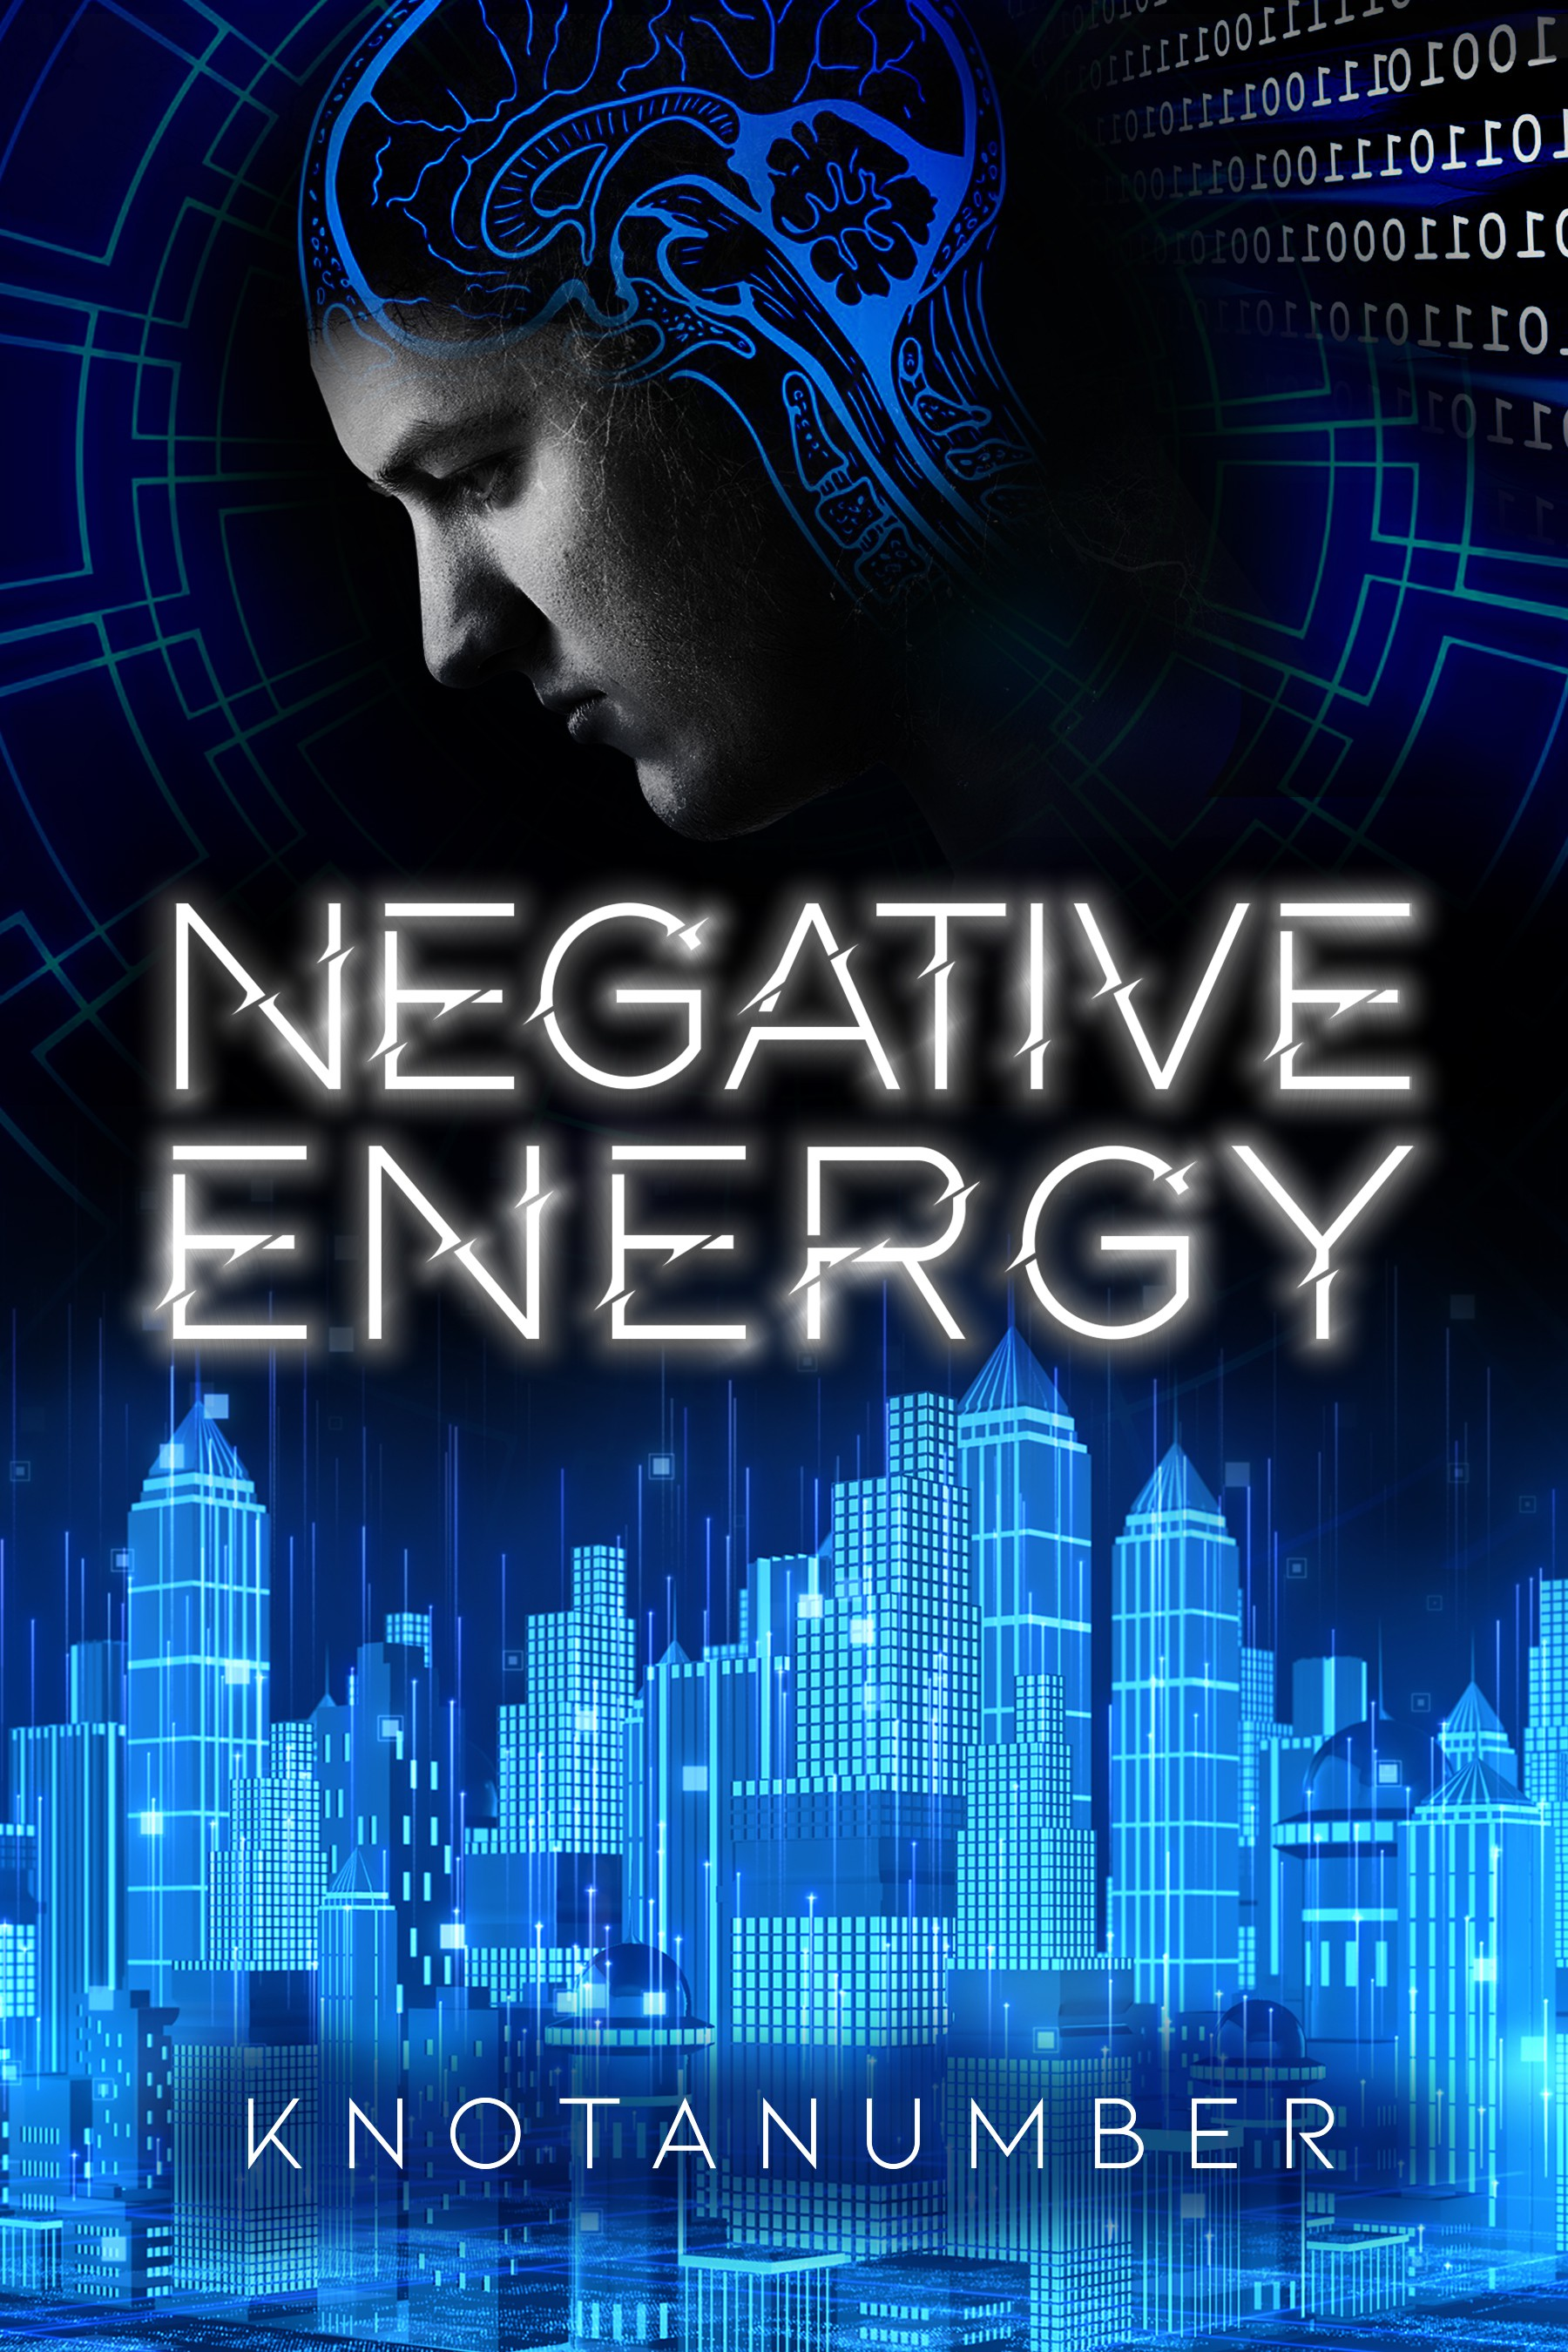 Sci-fi meets psych-thriller book cover